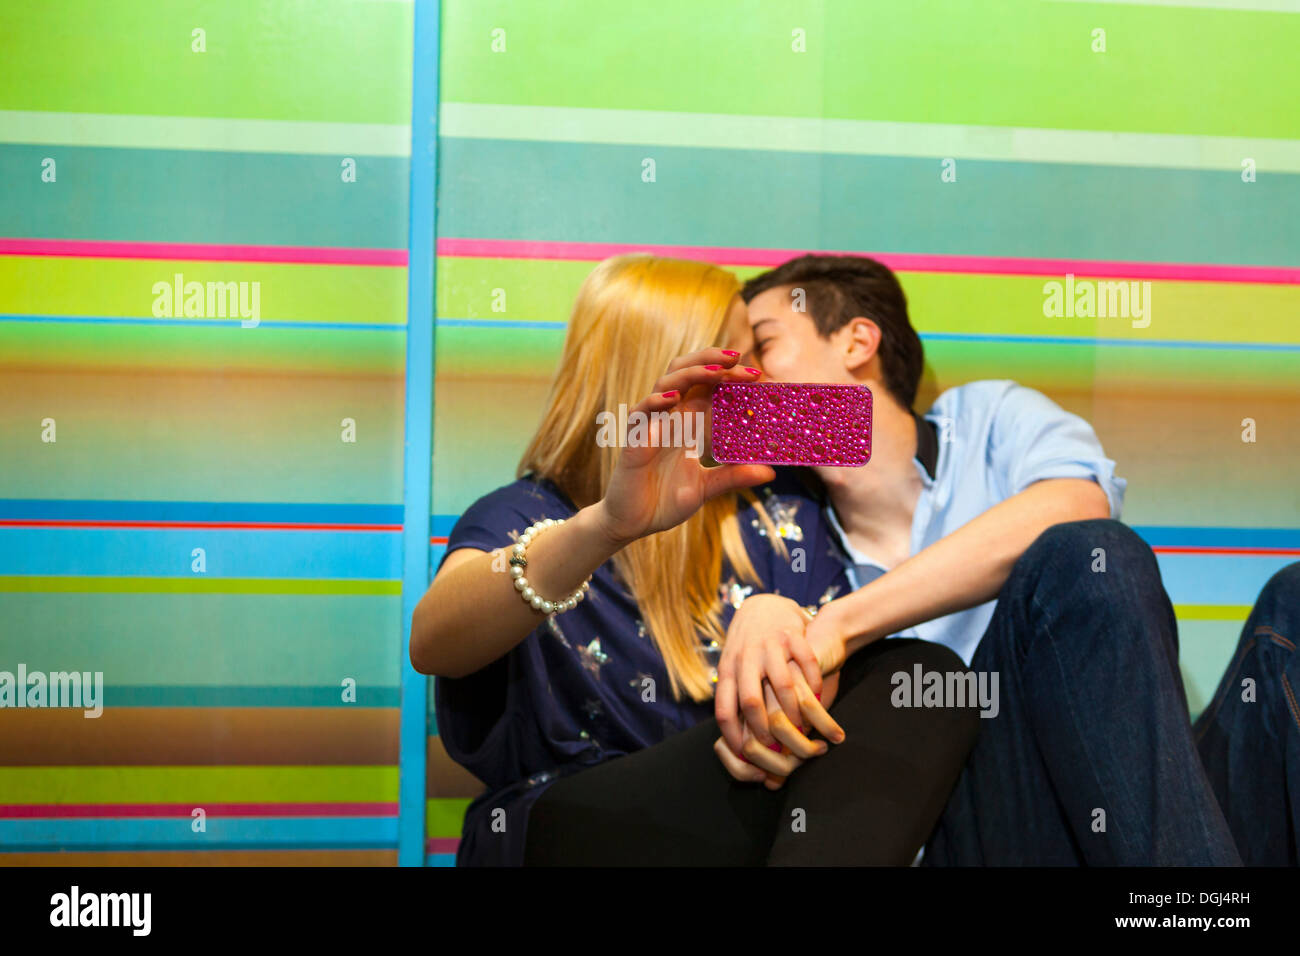 Young couple taking self portrait photograph of kiss - Stock Image